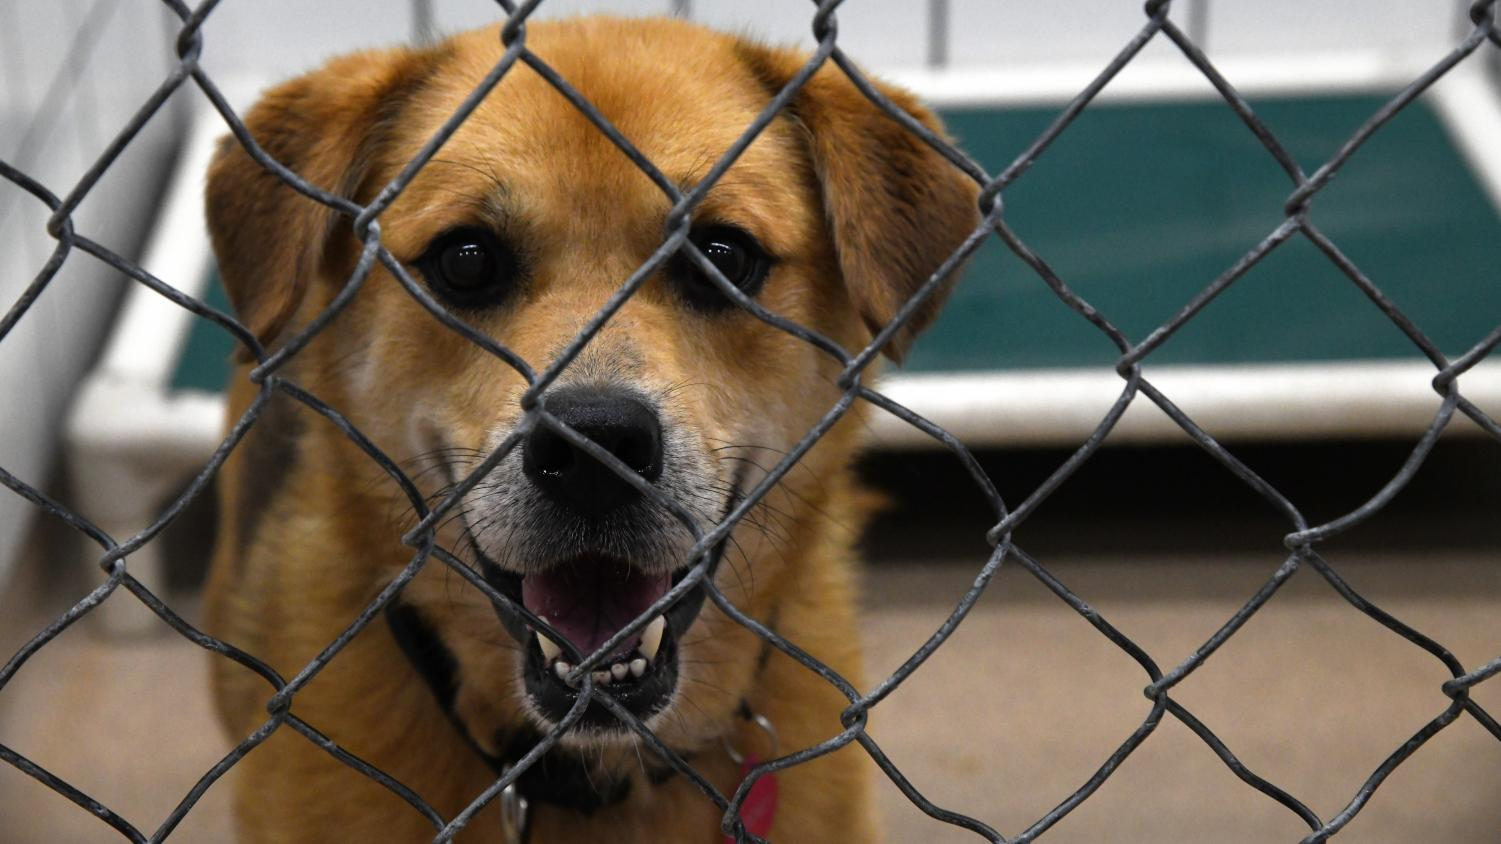 One of the many friendly, furry faces that were awaiting the Clear the Shelter event on Aug. 18, 2018.